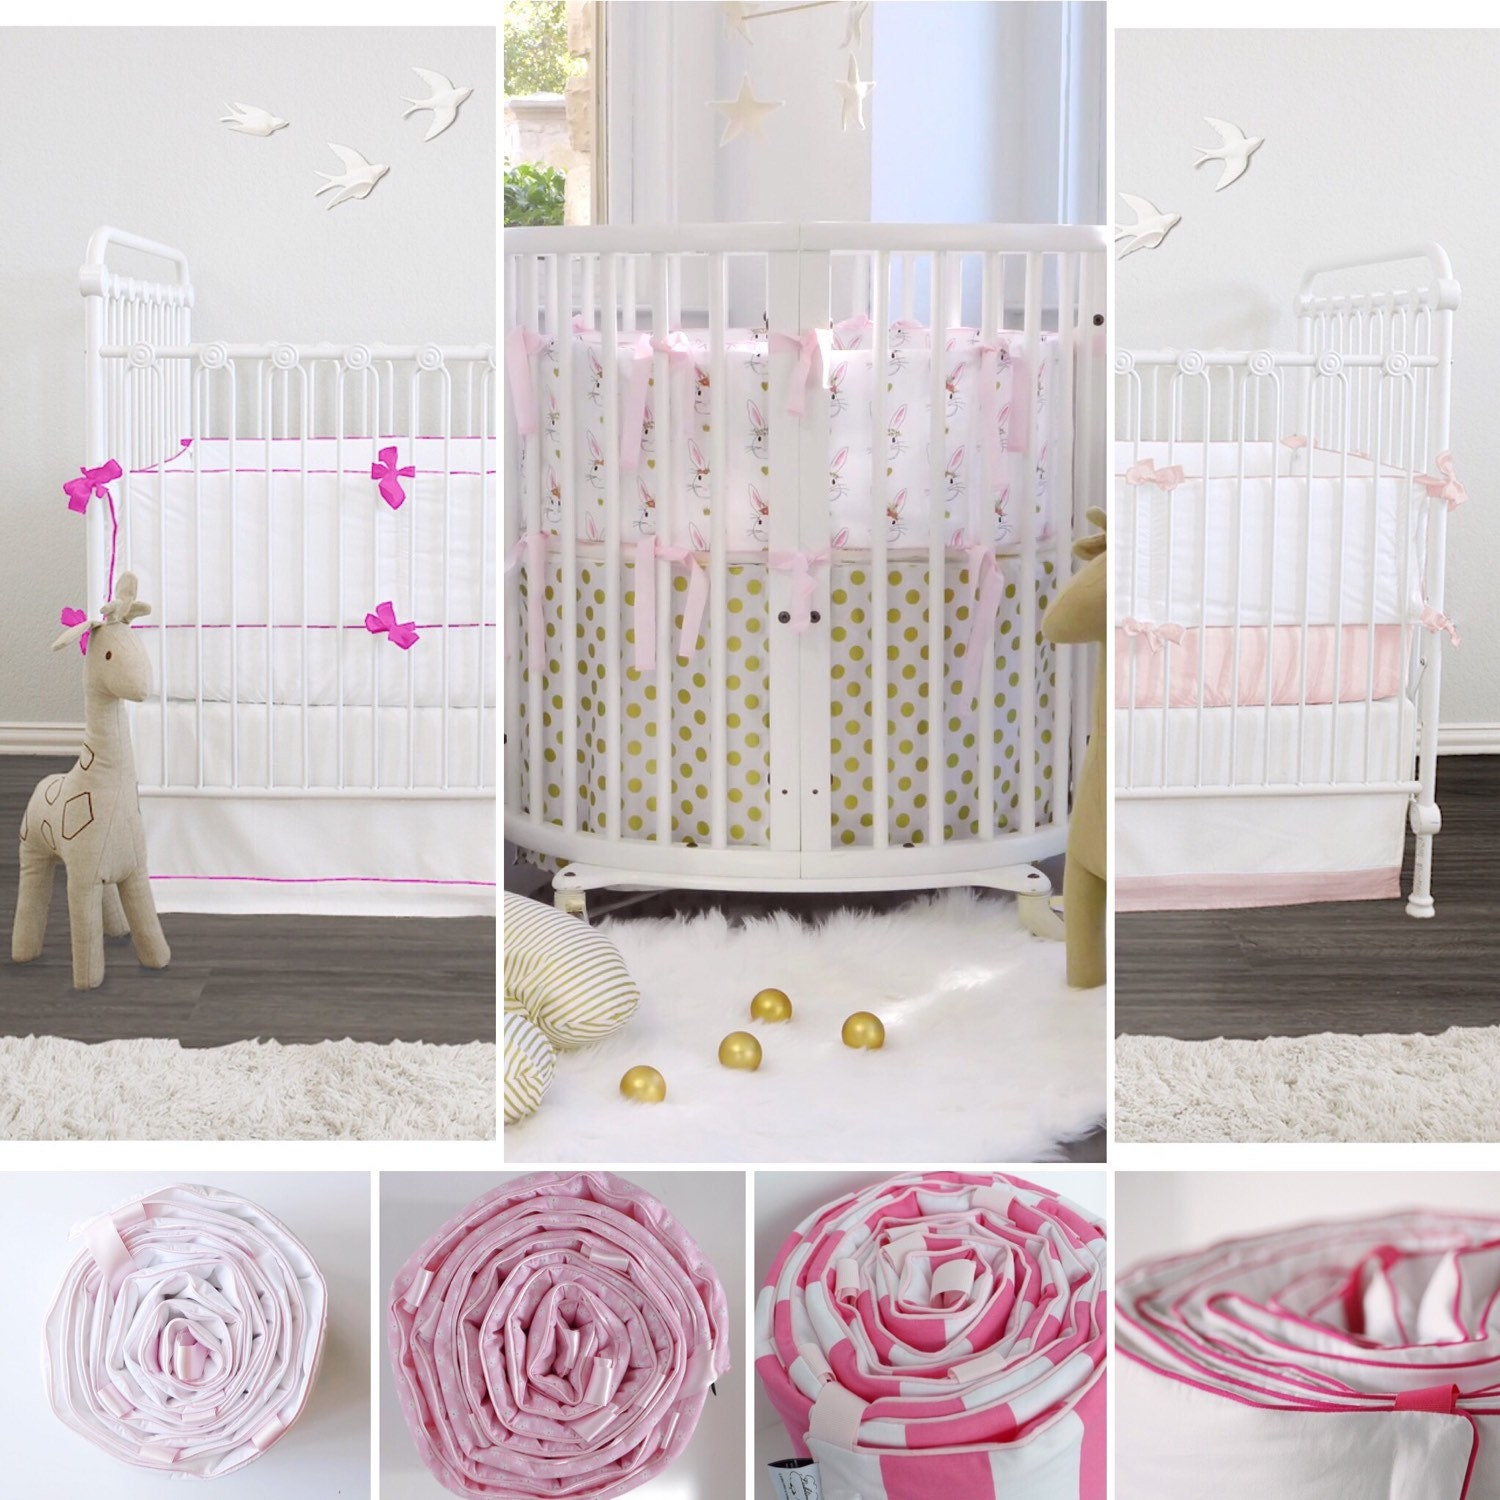 custom baby bedding  stokke bedding  pink   premium - custom baby bedding  stokke bedding  pink   premium combed percalecotton  choose your fabric  choose your trim